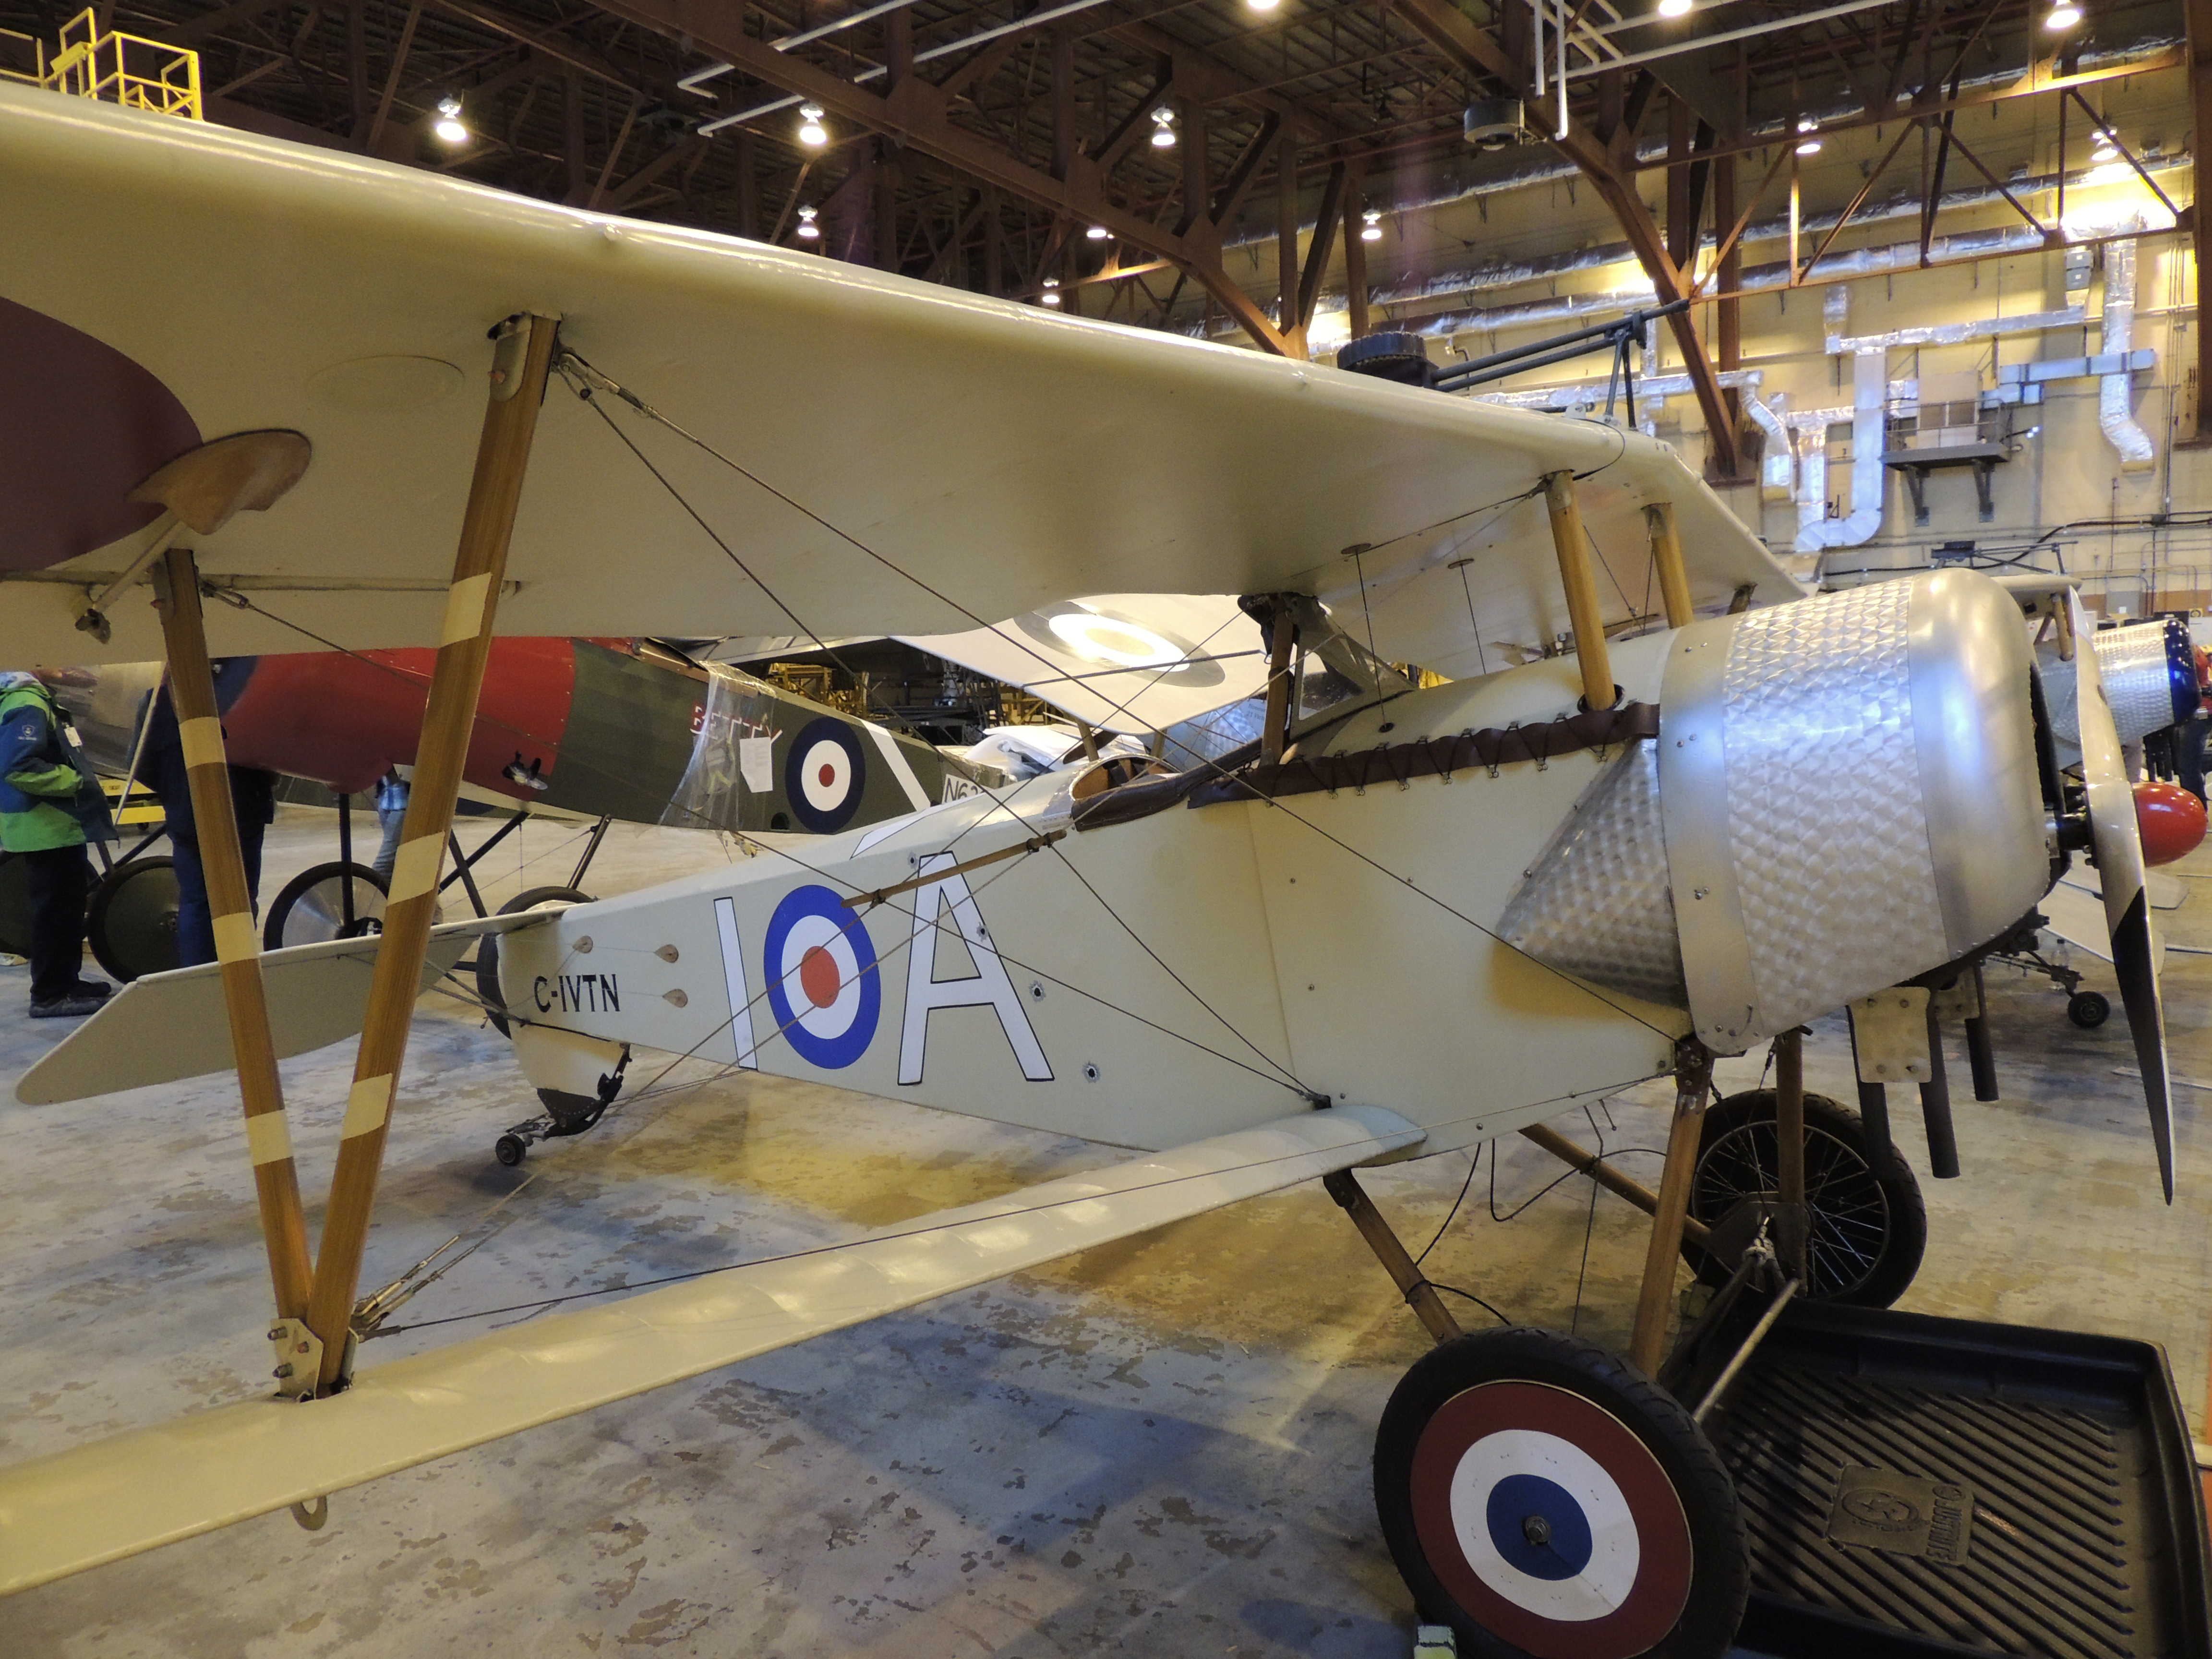 One of the Vimy Flight Association's Nieuport XI aircraft. PHOTO: Major Holly-Anne Brown